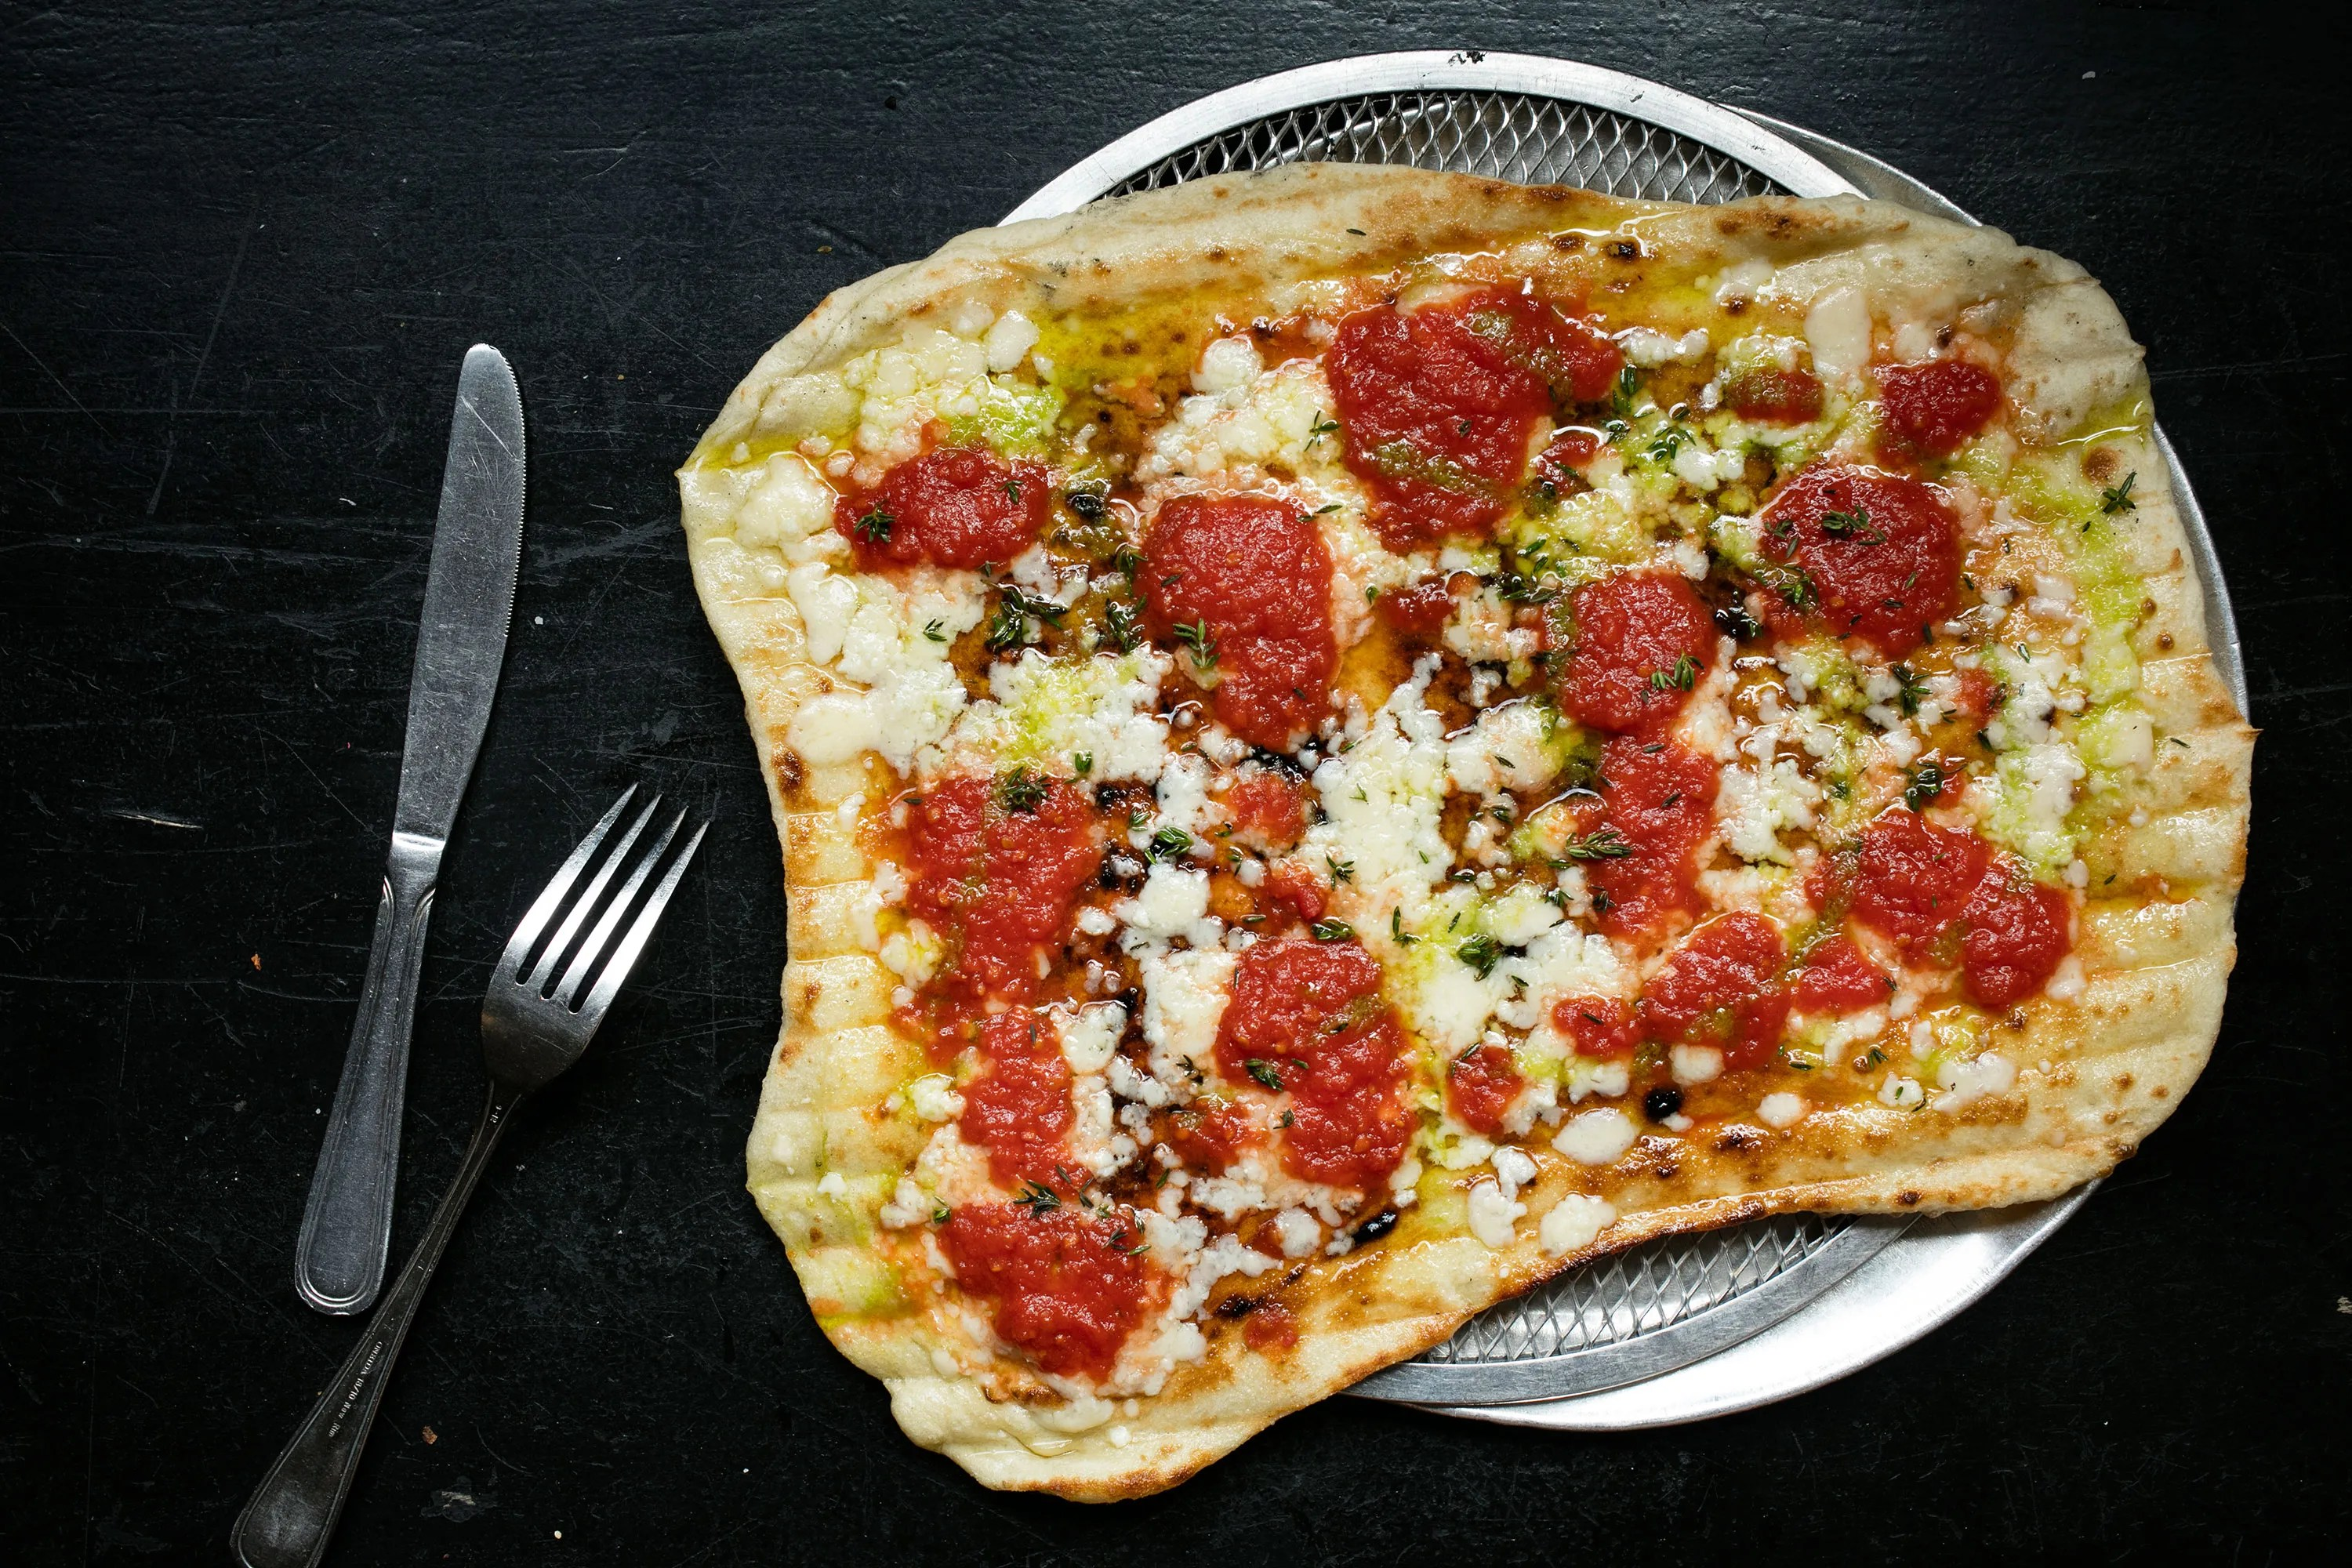 Restaurant Pizza Team Emily Tackles Rhode Island Style Grilled Pizza In Nyc